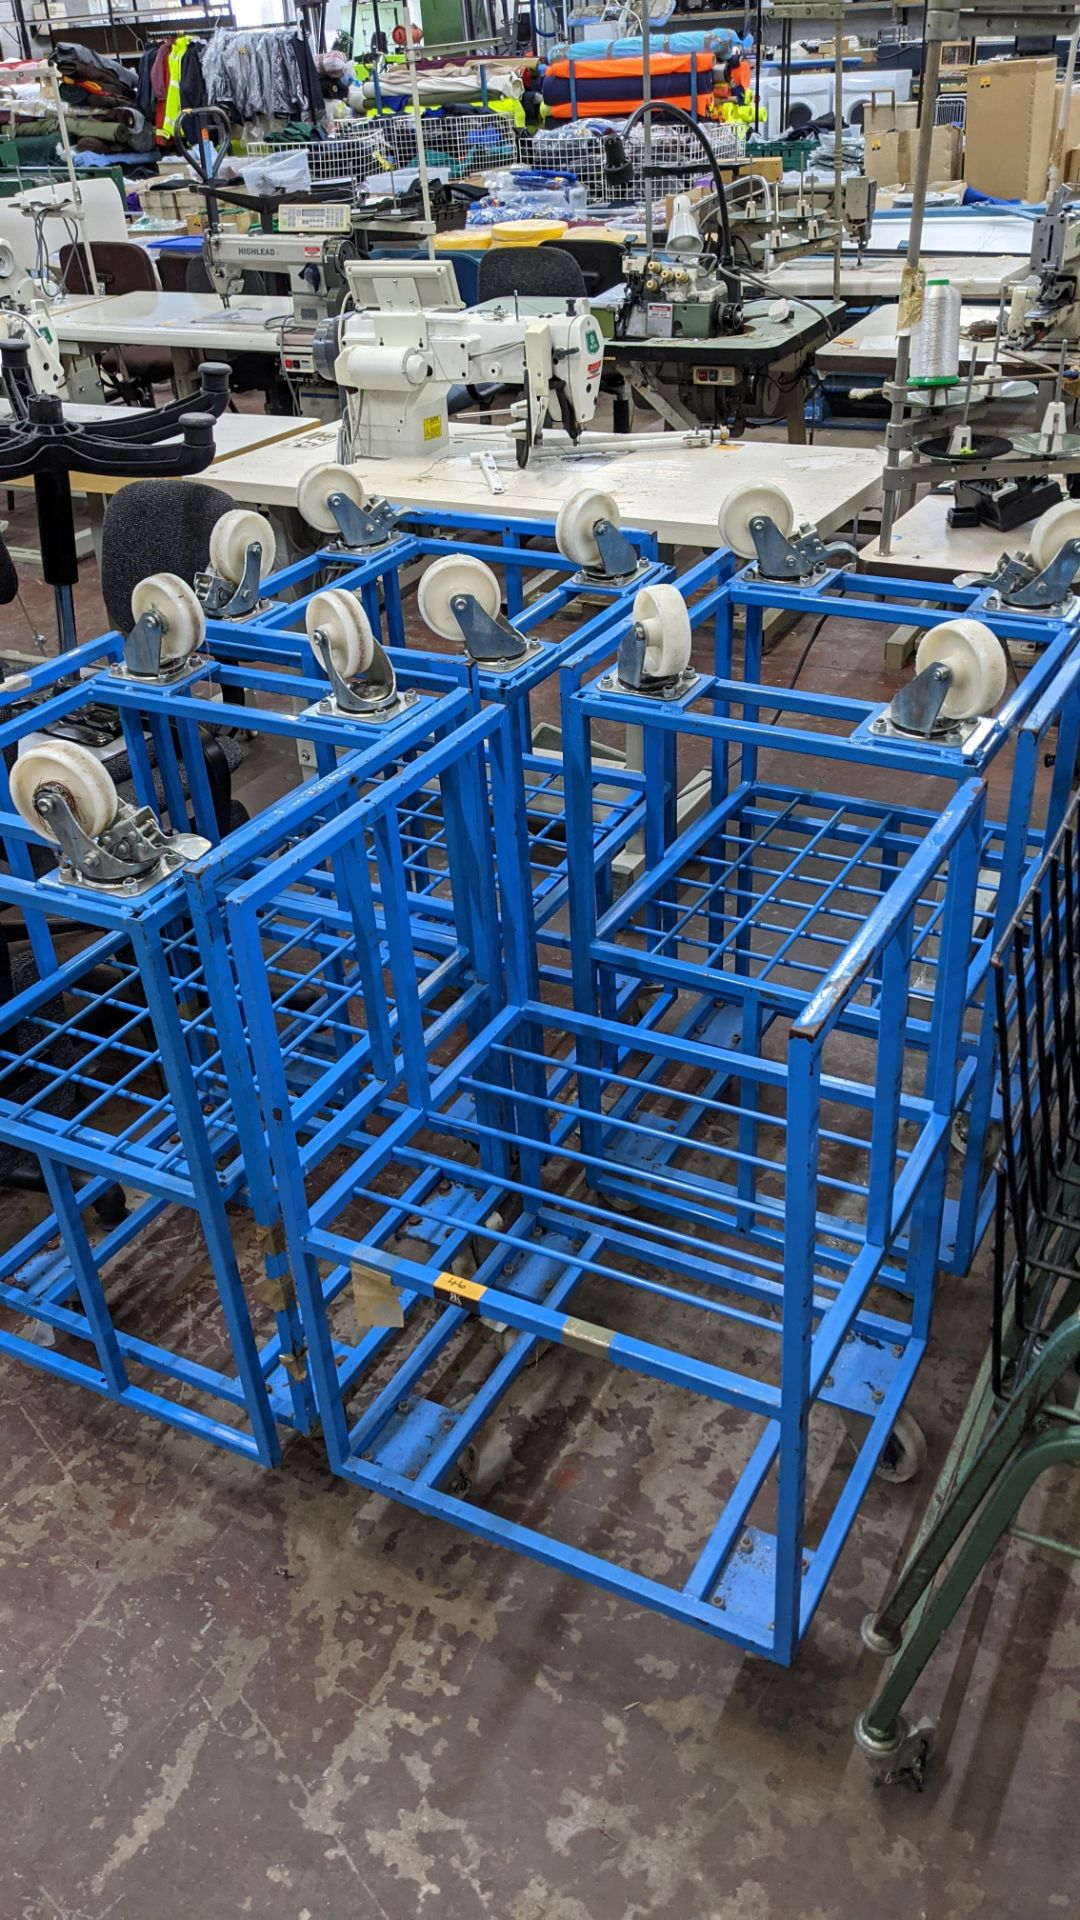 7 off blue mobile trollies - Image 5 of 6